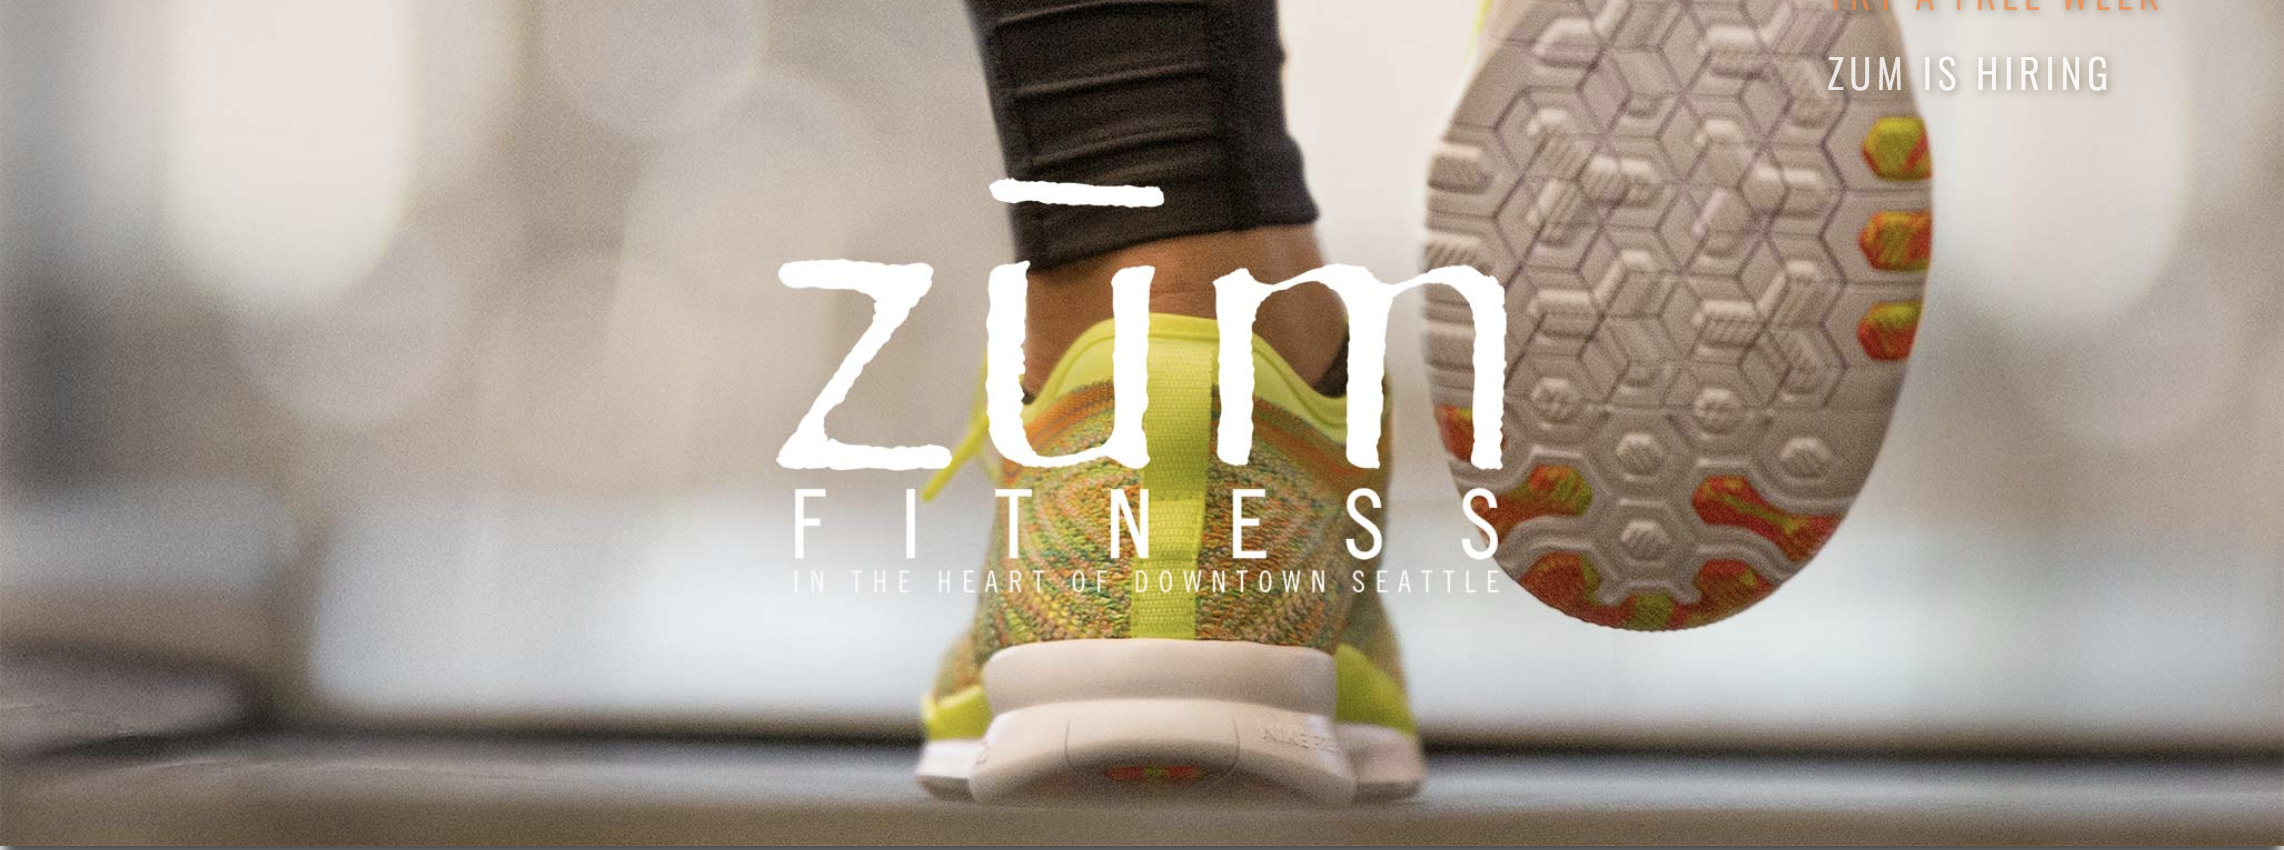 ZUM Fitness - ZUM Fitness was founded in 2002 on one simple principle: fitness is not a destination, it's a lifelong journey. That's why we created a fun, friendly place where personalized fitness experiences are the rule, not the exception. Going to the gym should be the highlight of your day.ZUM Fitness is a rare gym that doesn't feel like a gym. And it is a place we have been training and teaching at since 2009.